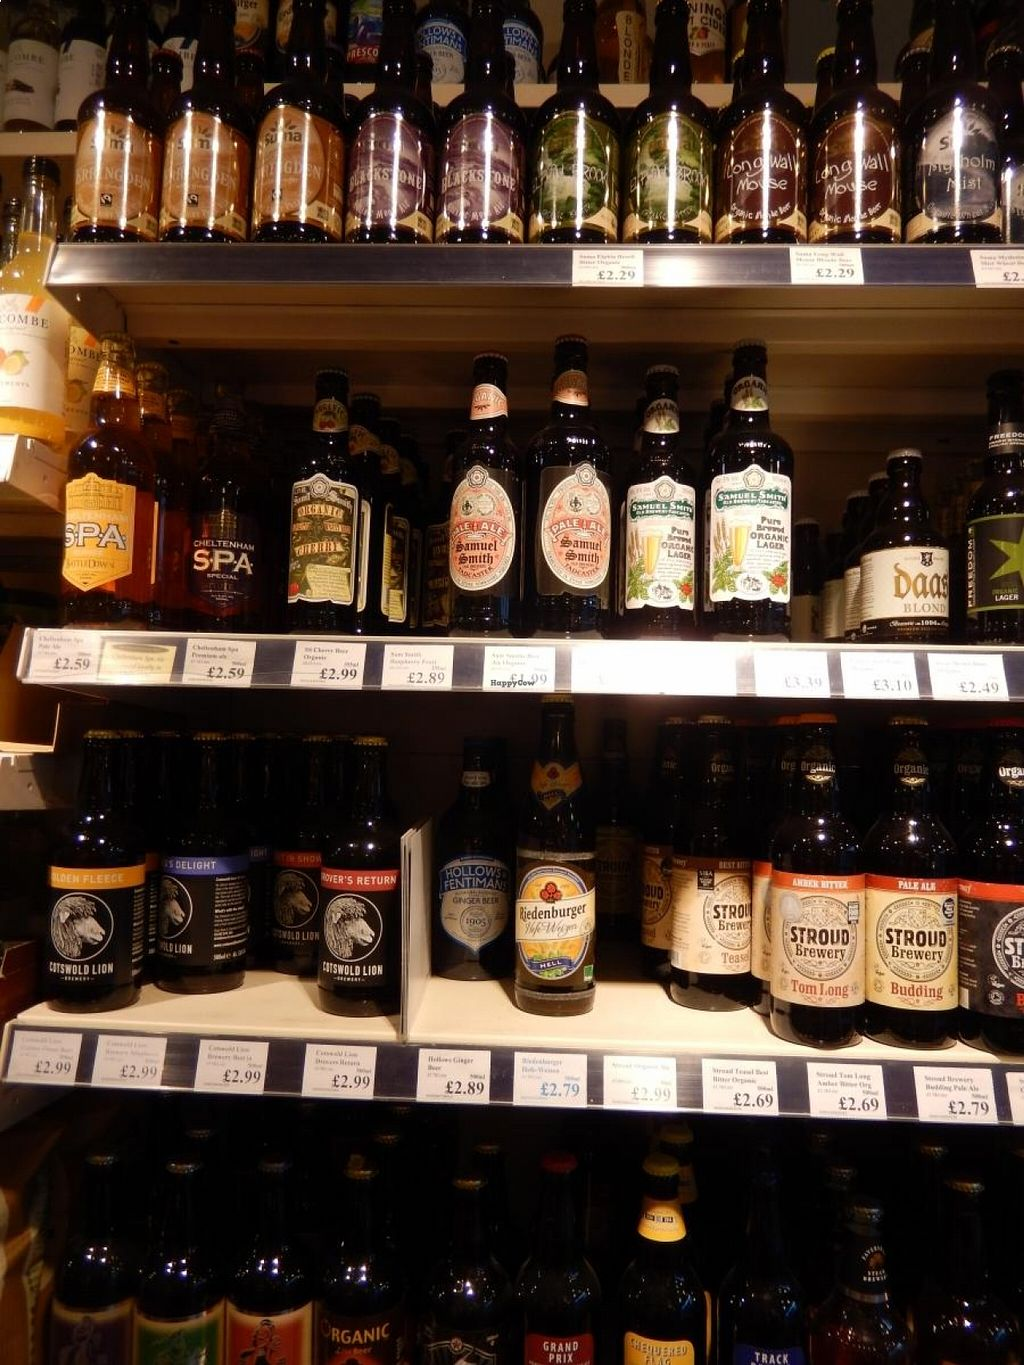 """Photo of The Natural Grocery Store  by <a href=""""/members/profile/CLRtraveller"""">CLRtraveller</a> <br/>some of the beers <br/> August 21, 2015  - <a href='/contact/abuse/image/44432/114559'>Report</a>"""